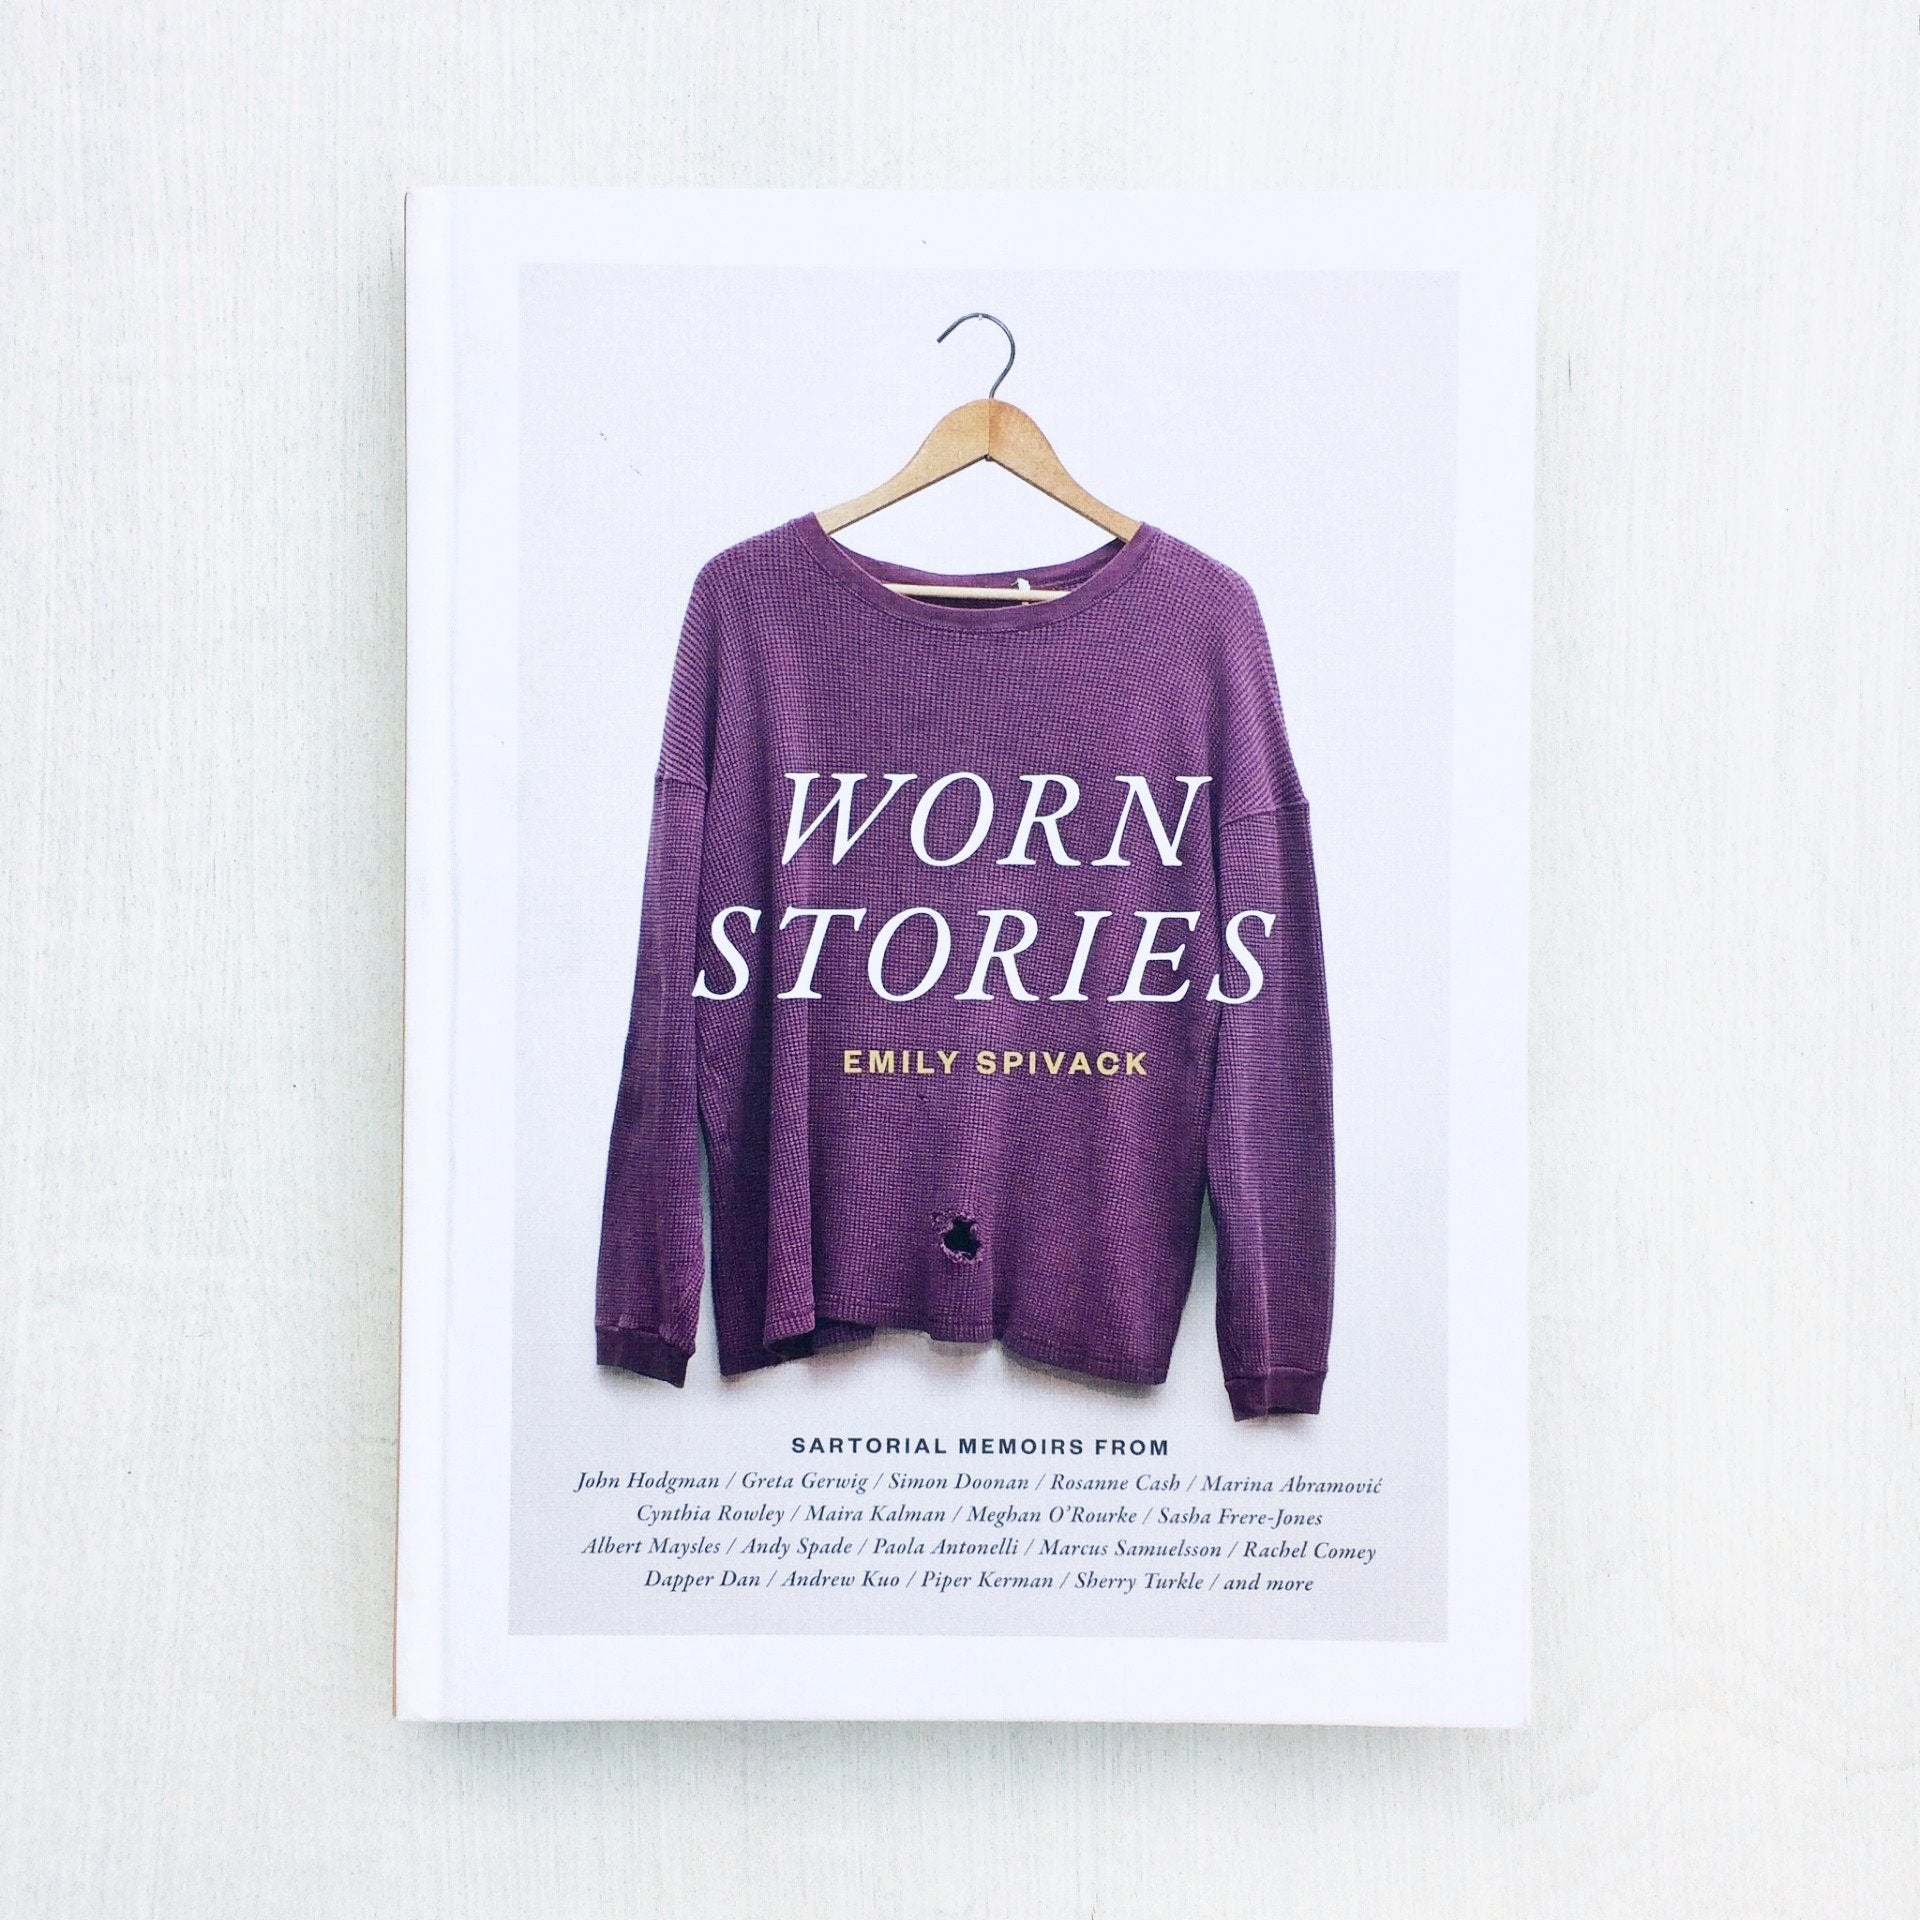 Worn Stories by Emily Spivack - SOLD OUT